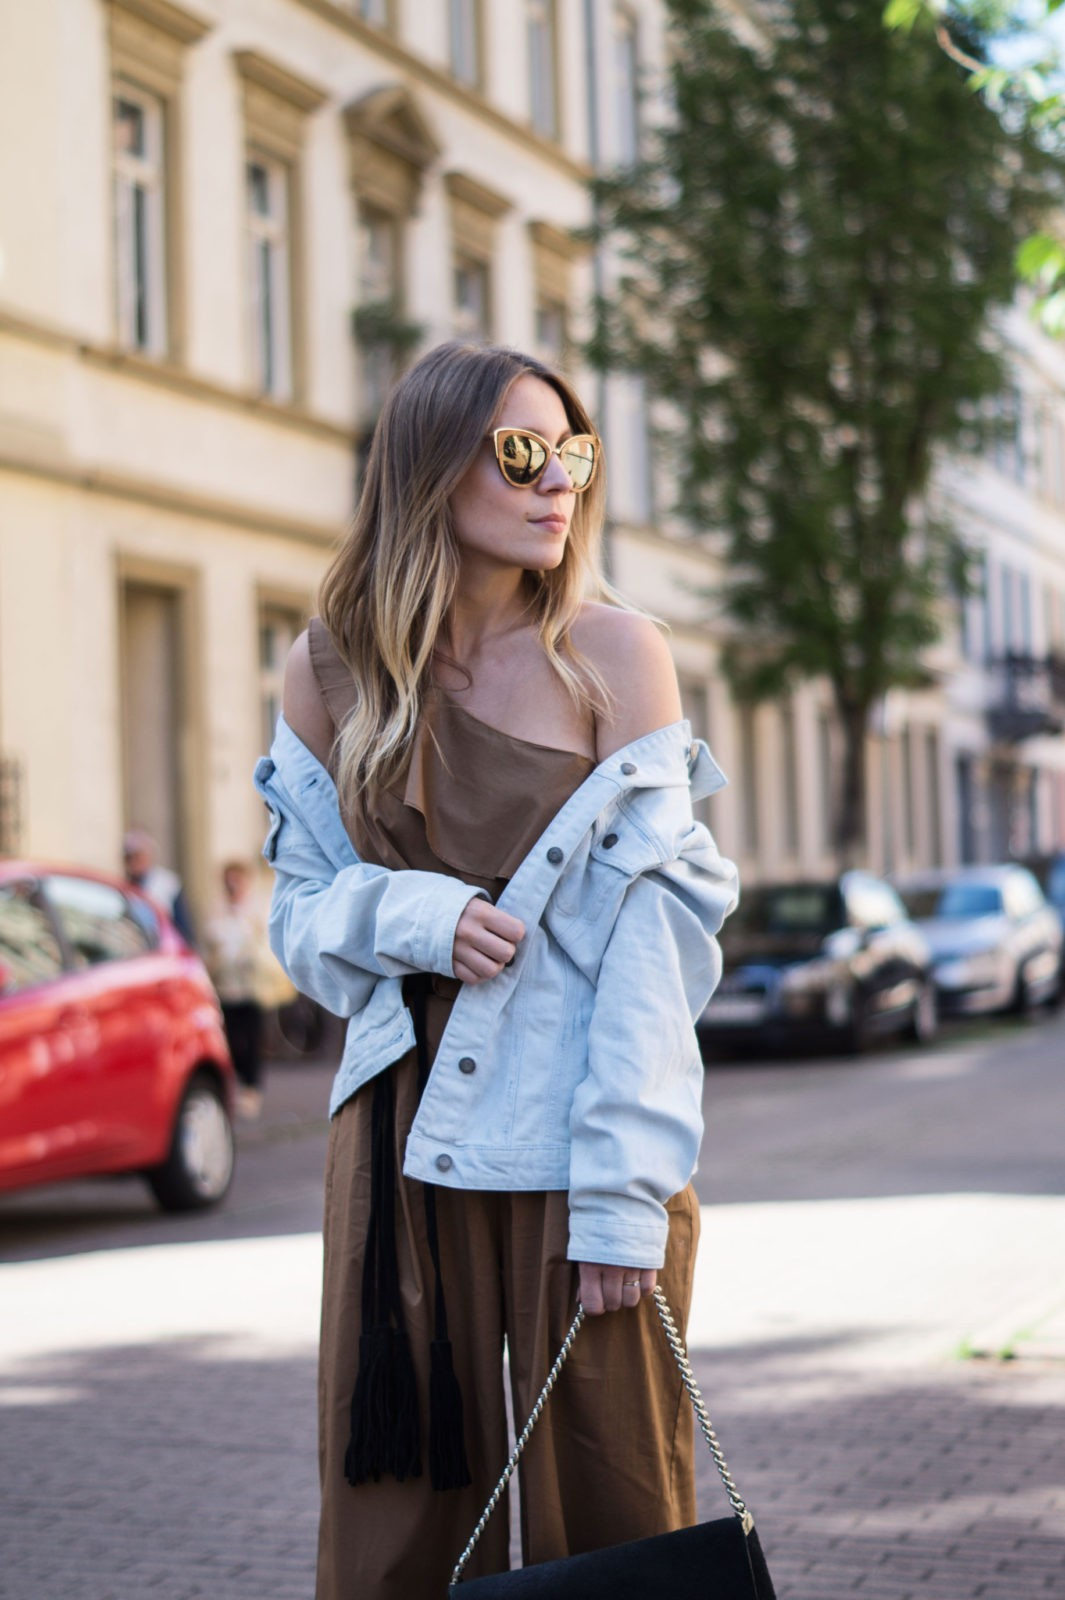 Sariety Modeblog Sarah Czok Fashionblogger Streetstyle Outfit Jumpsuit Obersize Denim Jeansjacke-11